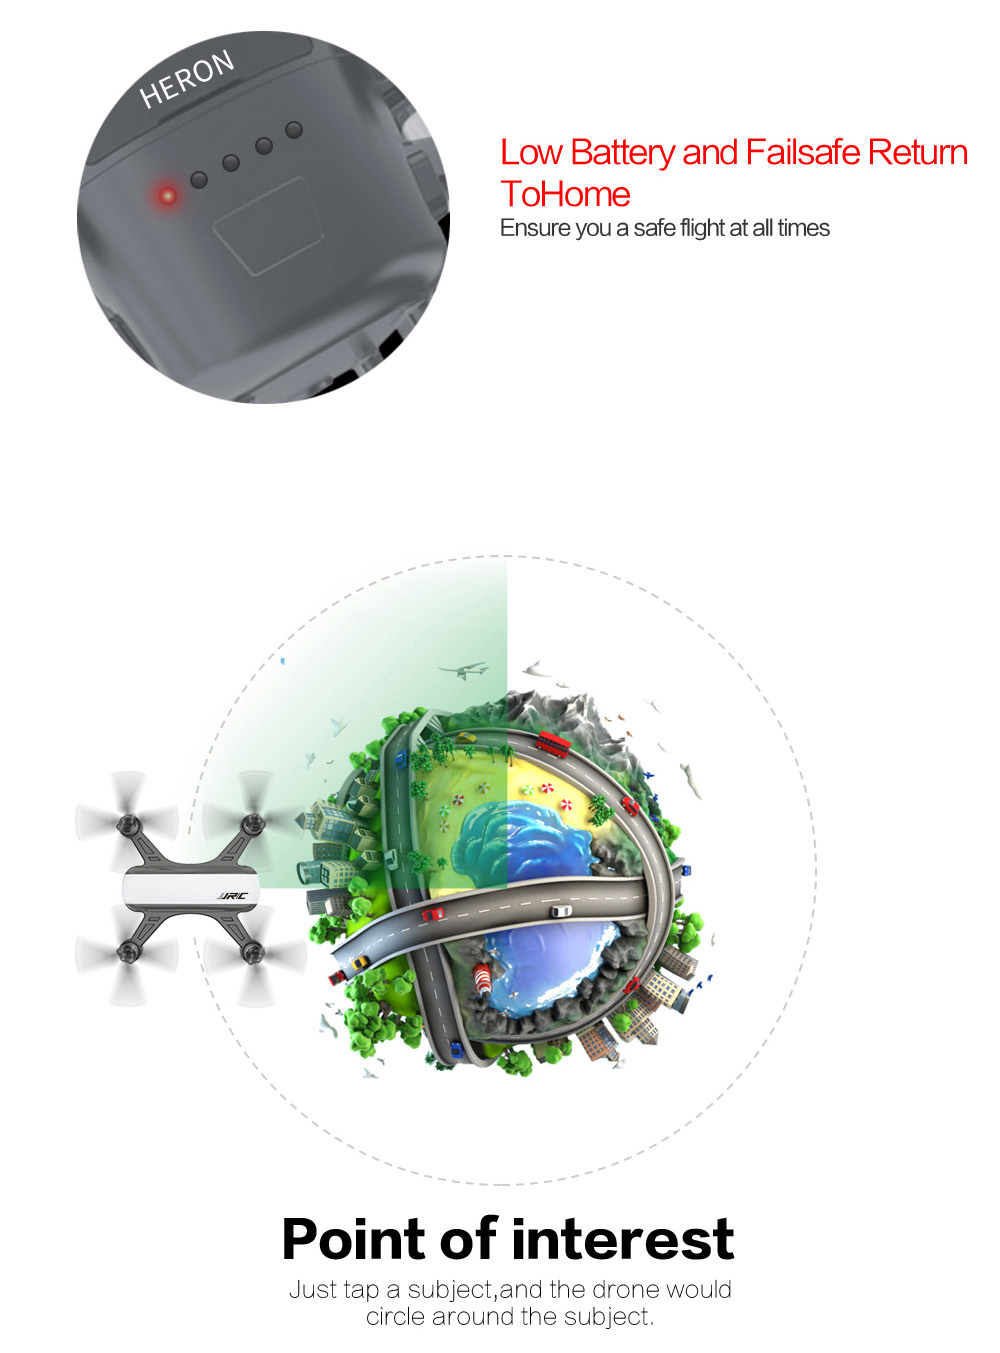 JJRC X9PS Upgraded Heron GPS 5G WiFi FPV with 4K HD Camera Optical Flow Positioning 249g RC Drone Quadcopter RTF - White 1 Battery with Color Box